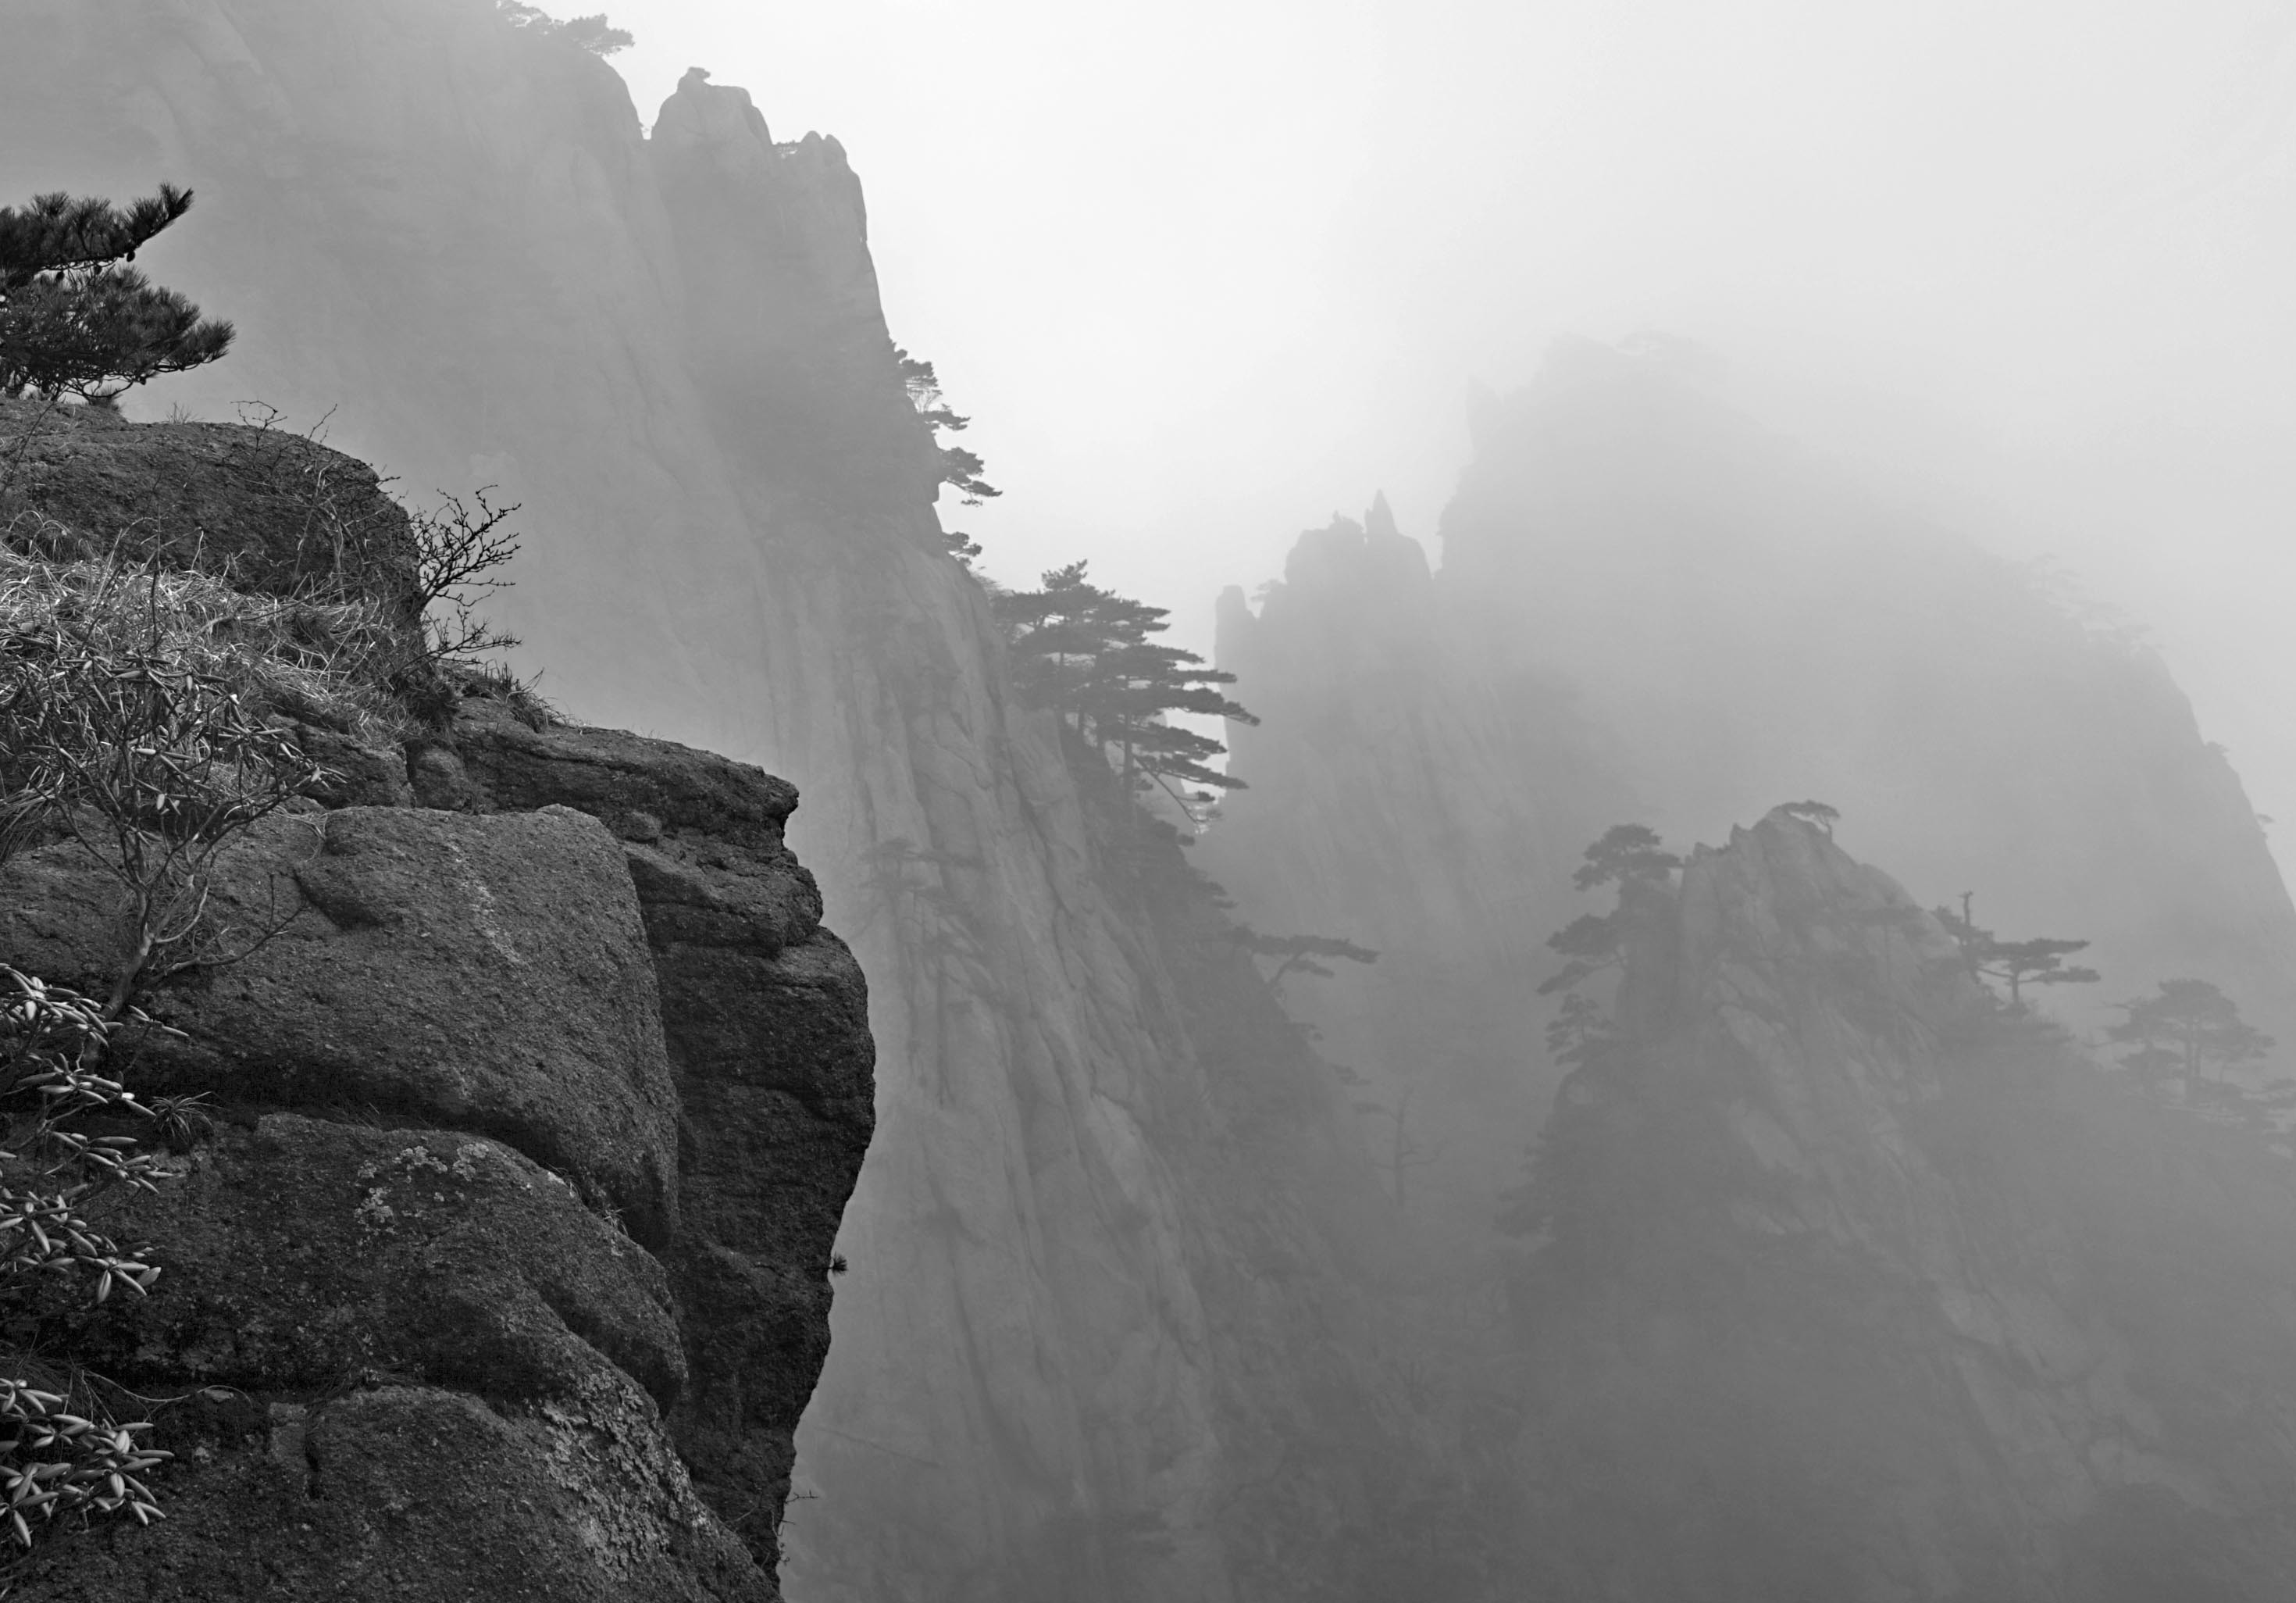 Chinese Mountain Painting Wallpaper